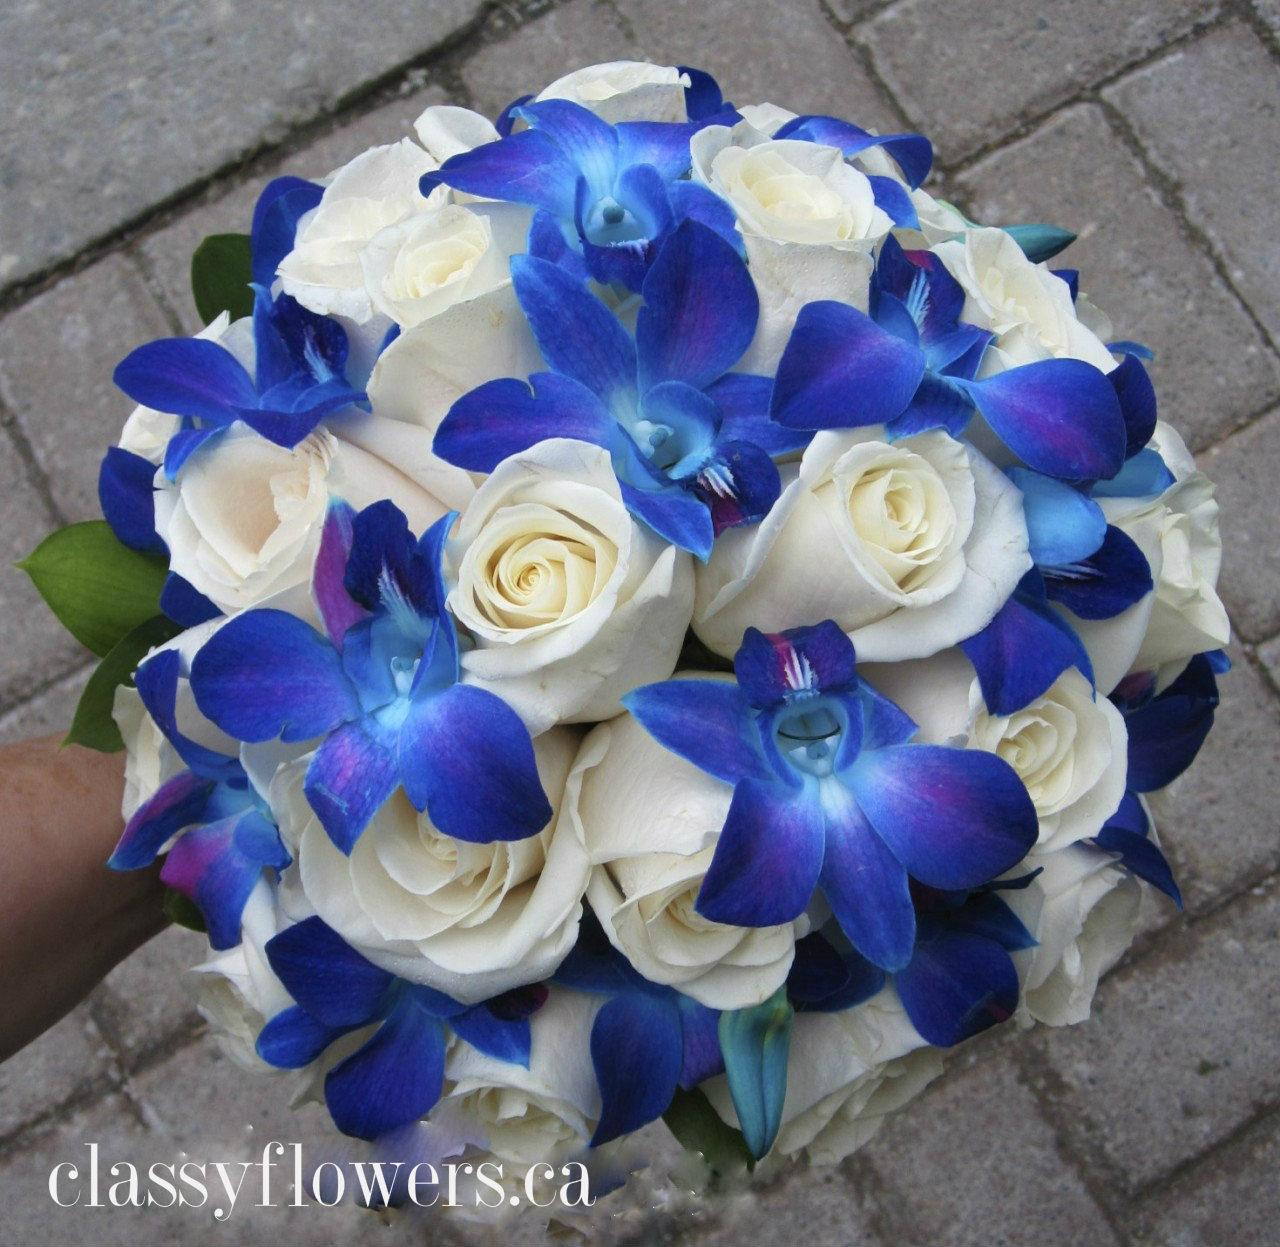 blue orchid wedding bouquets bridal bouquet with white roses and blue dendrobium orchids 1940